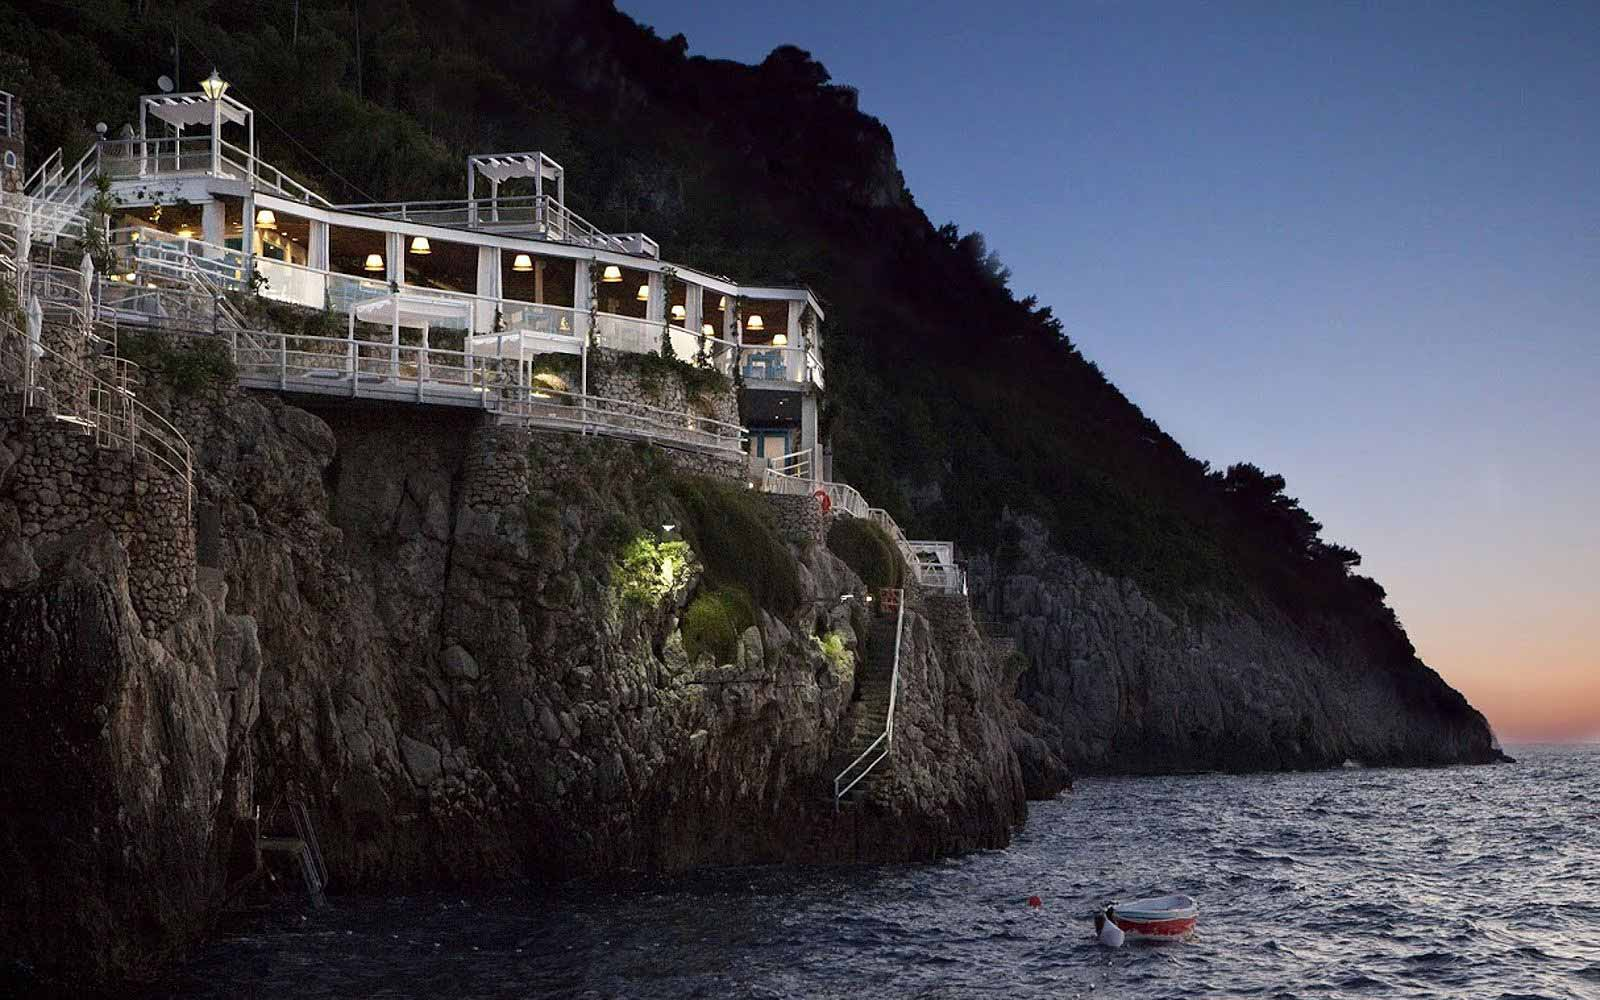 Panoramic view of Capri Palace Hotel & Spa at night